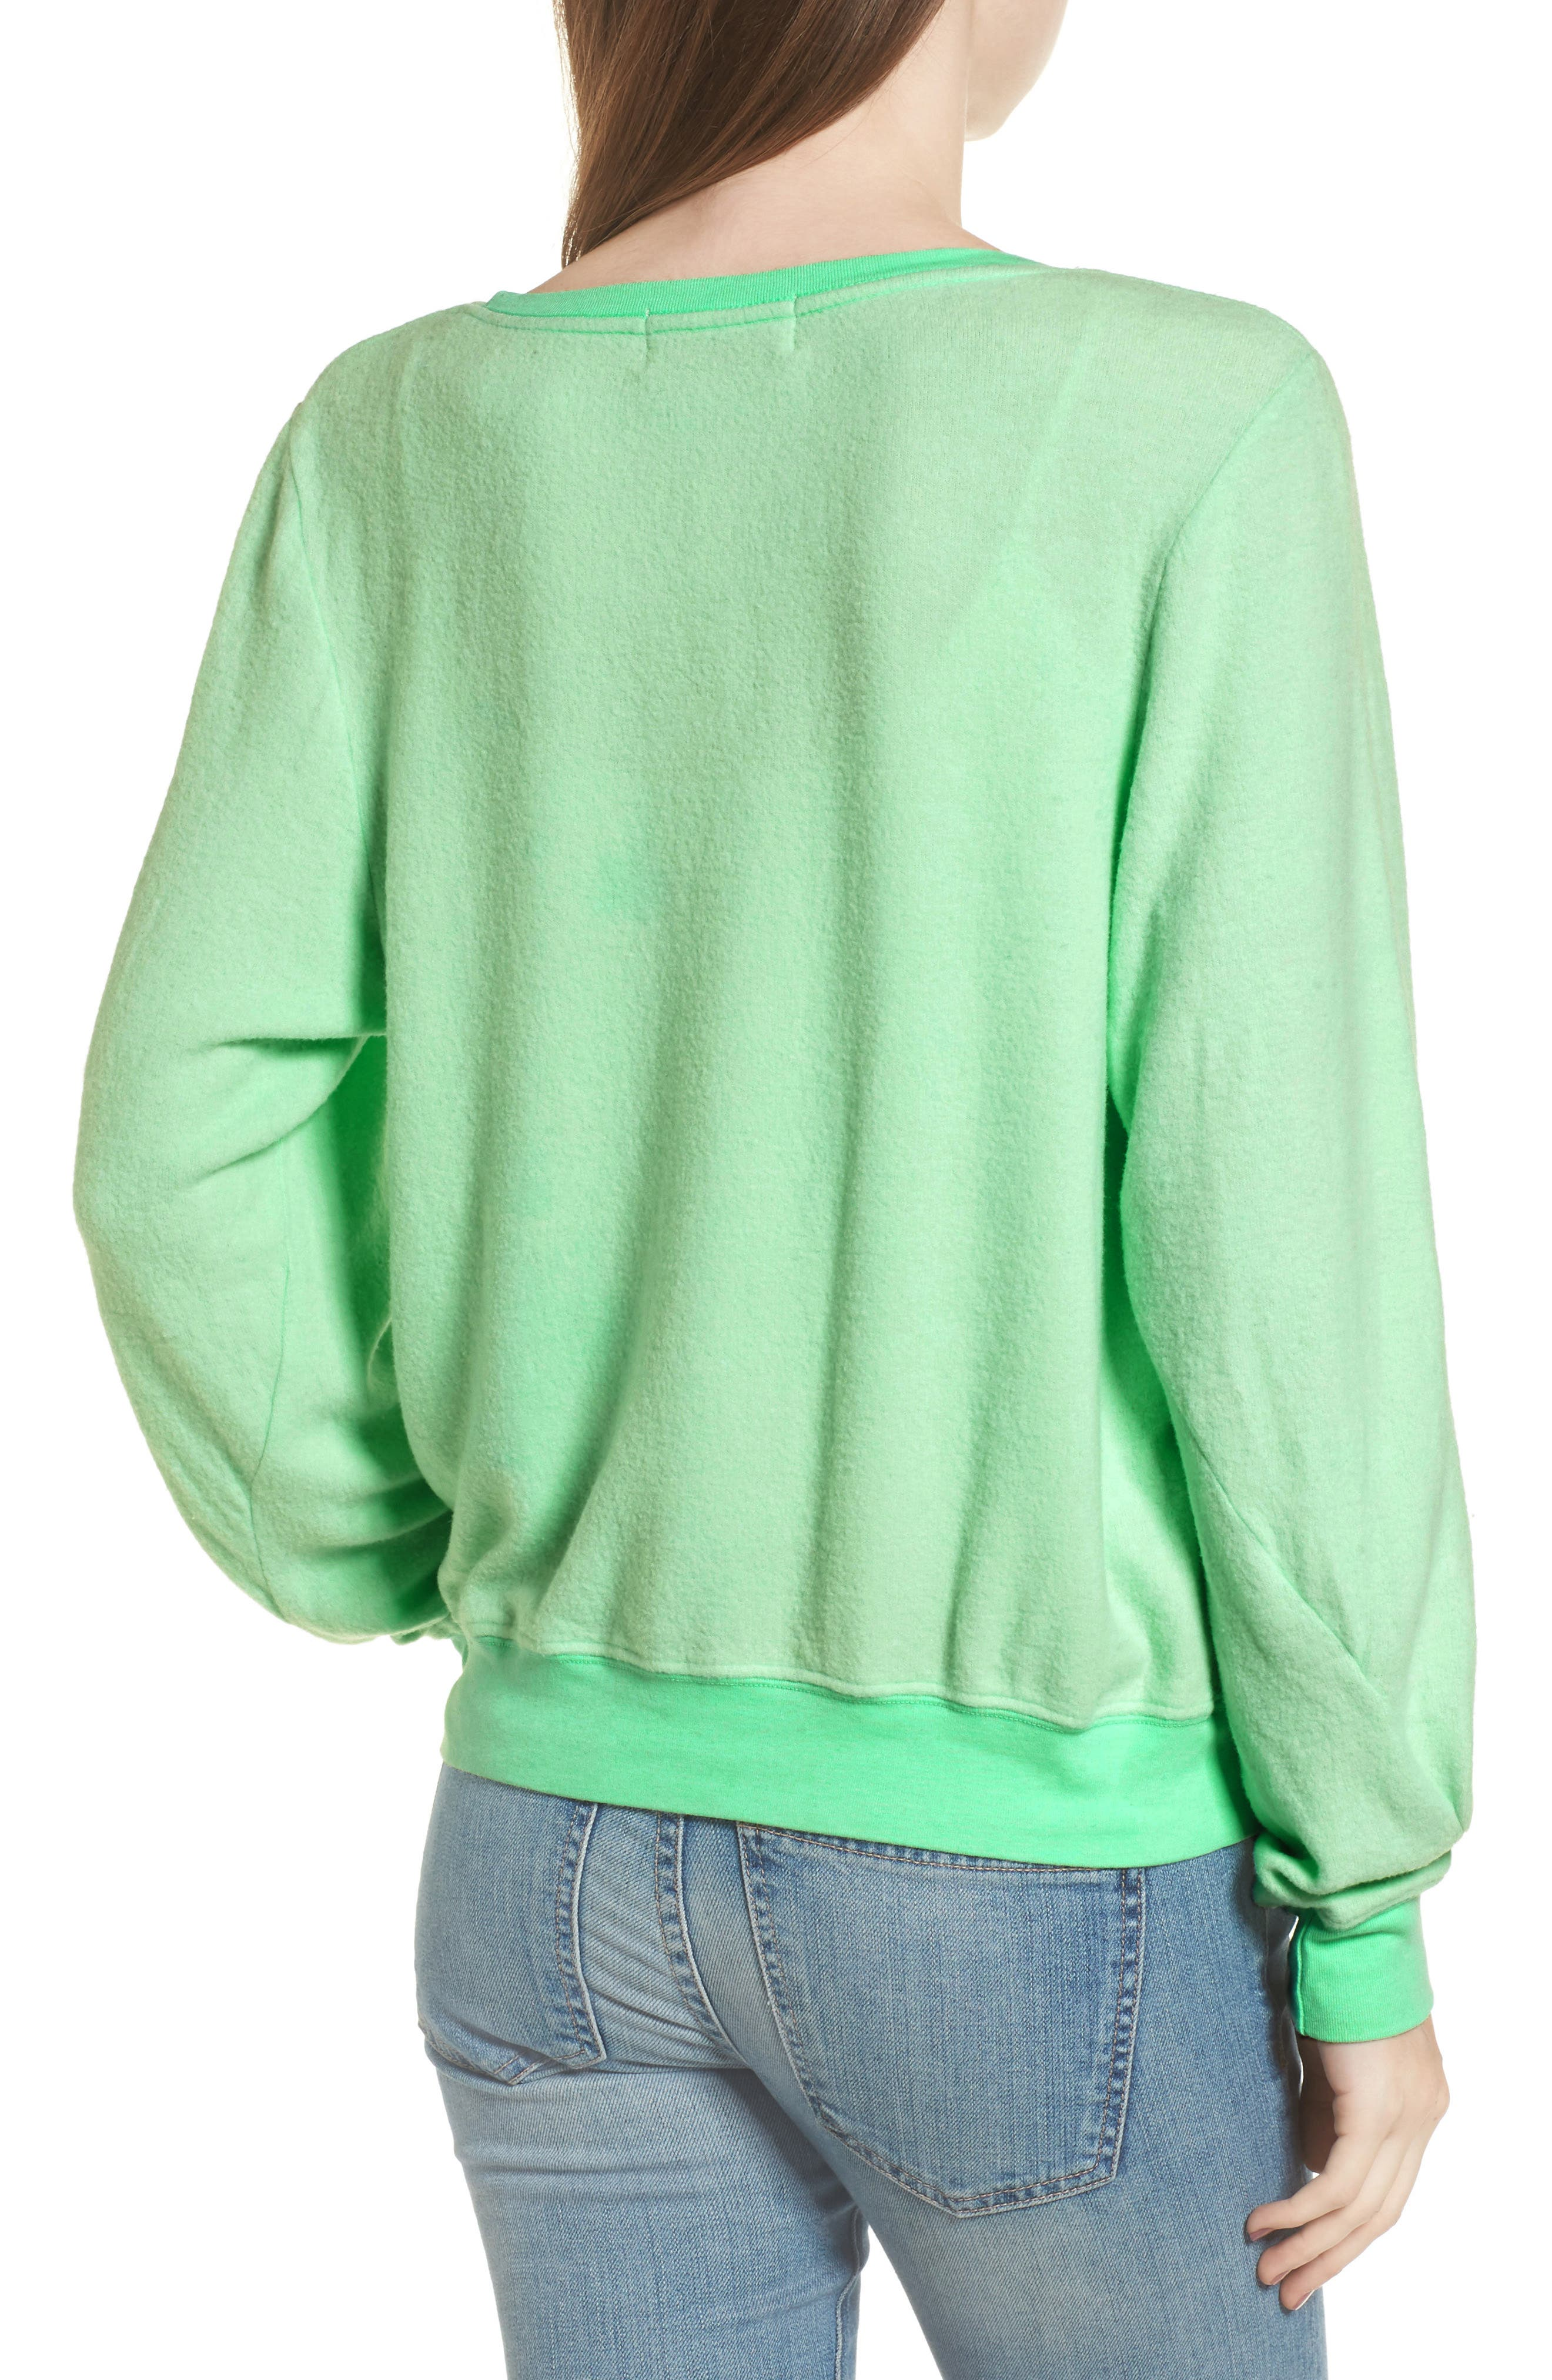 California Dreamin Sweatshirt,                             Alternate thumbnail 2, color,                             Mint Julep